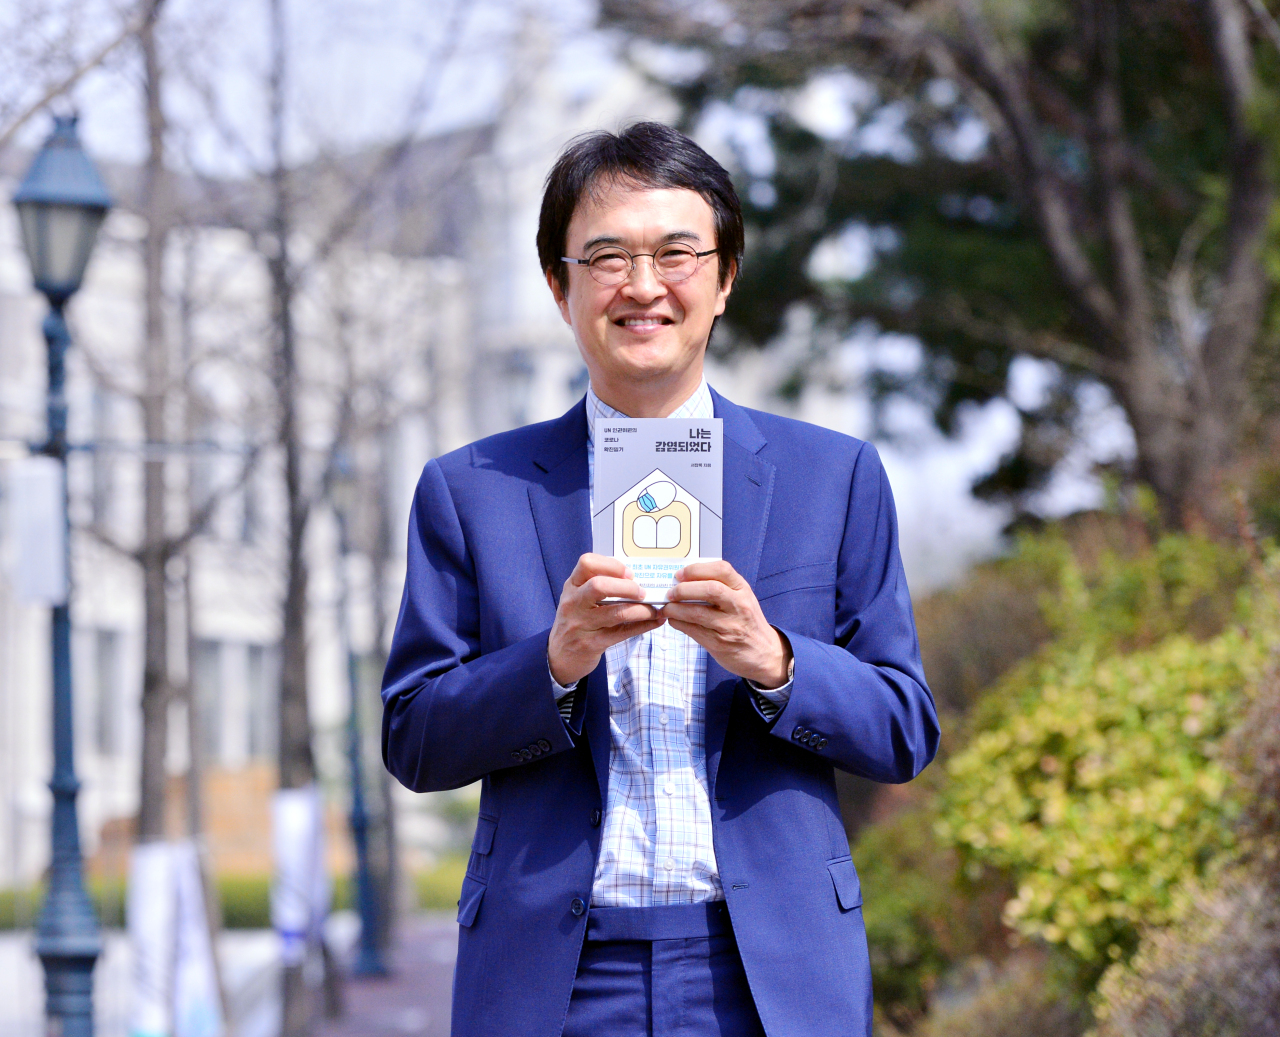 Soh Chang-rok, a Korea University professor and UN Human Rights Committee member, poses before an interview with The Korea Herald at Korea University on March 26. (Park Hyun-koo/The Korea Herald)